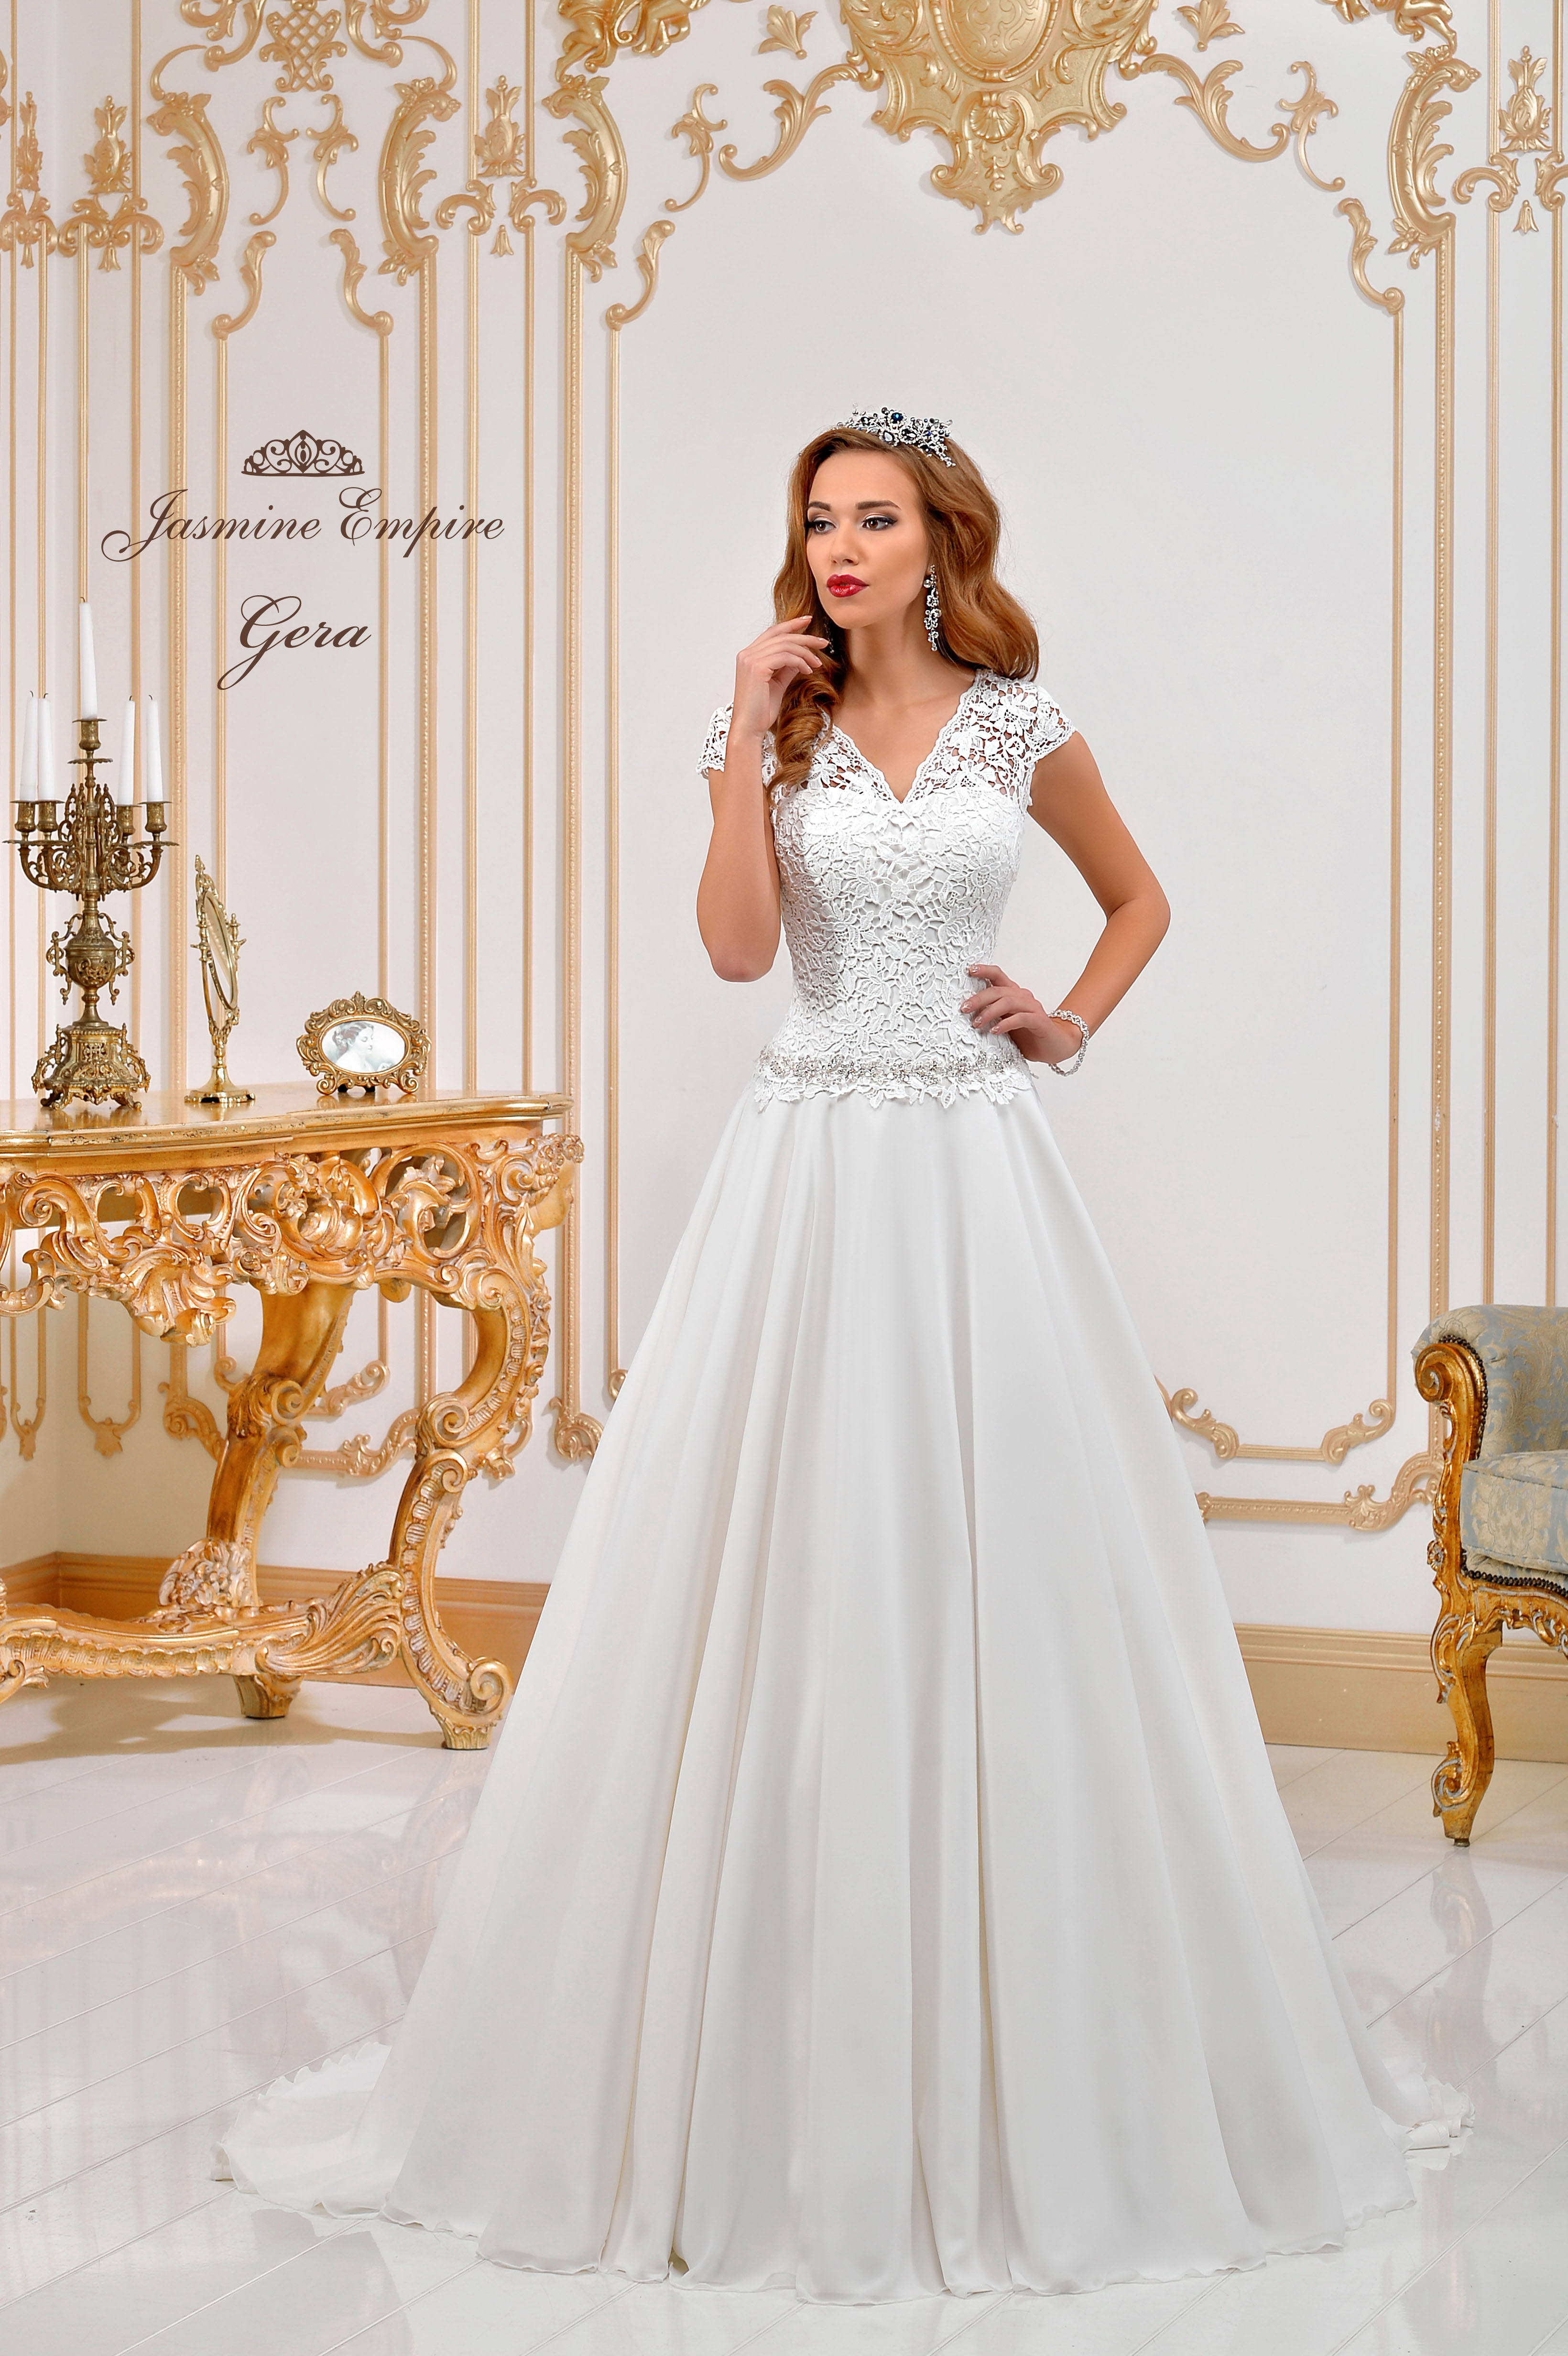 Wedding Dress Gera  1